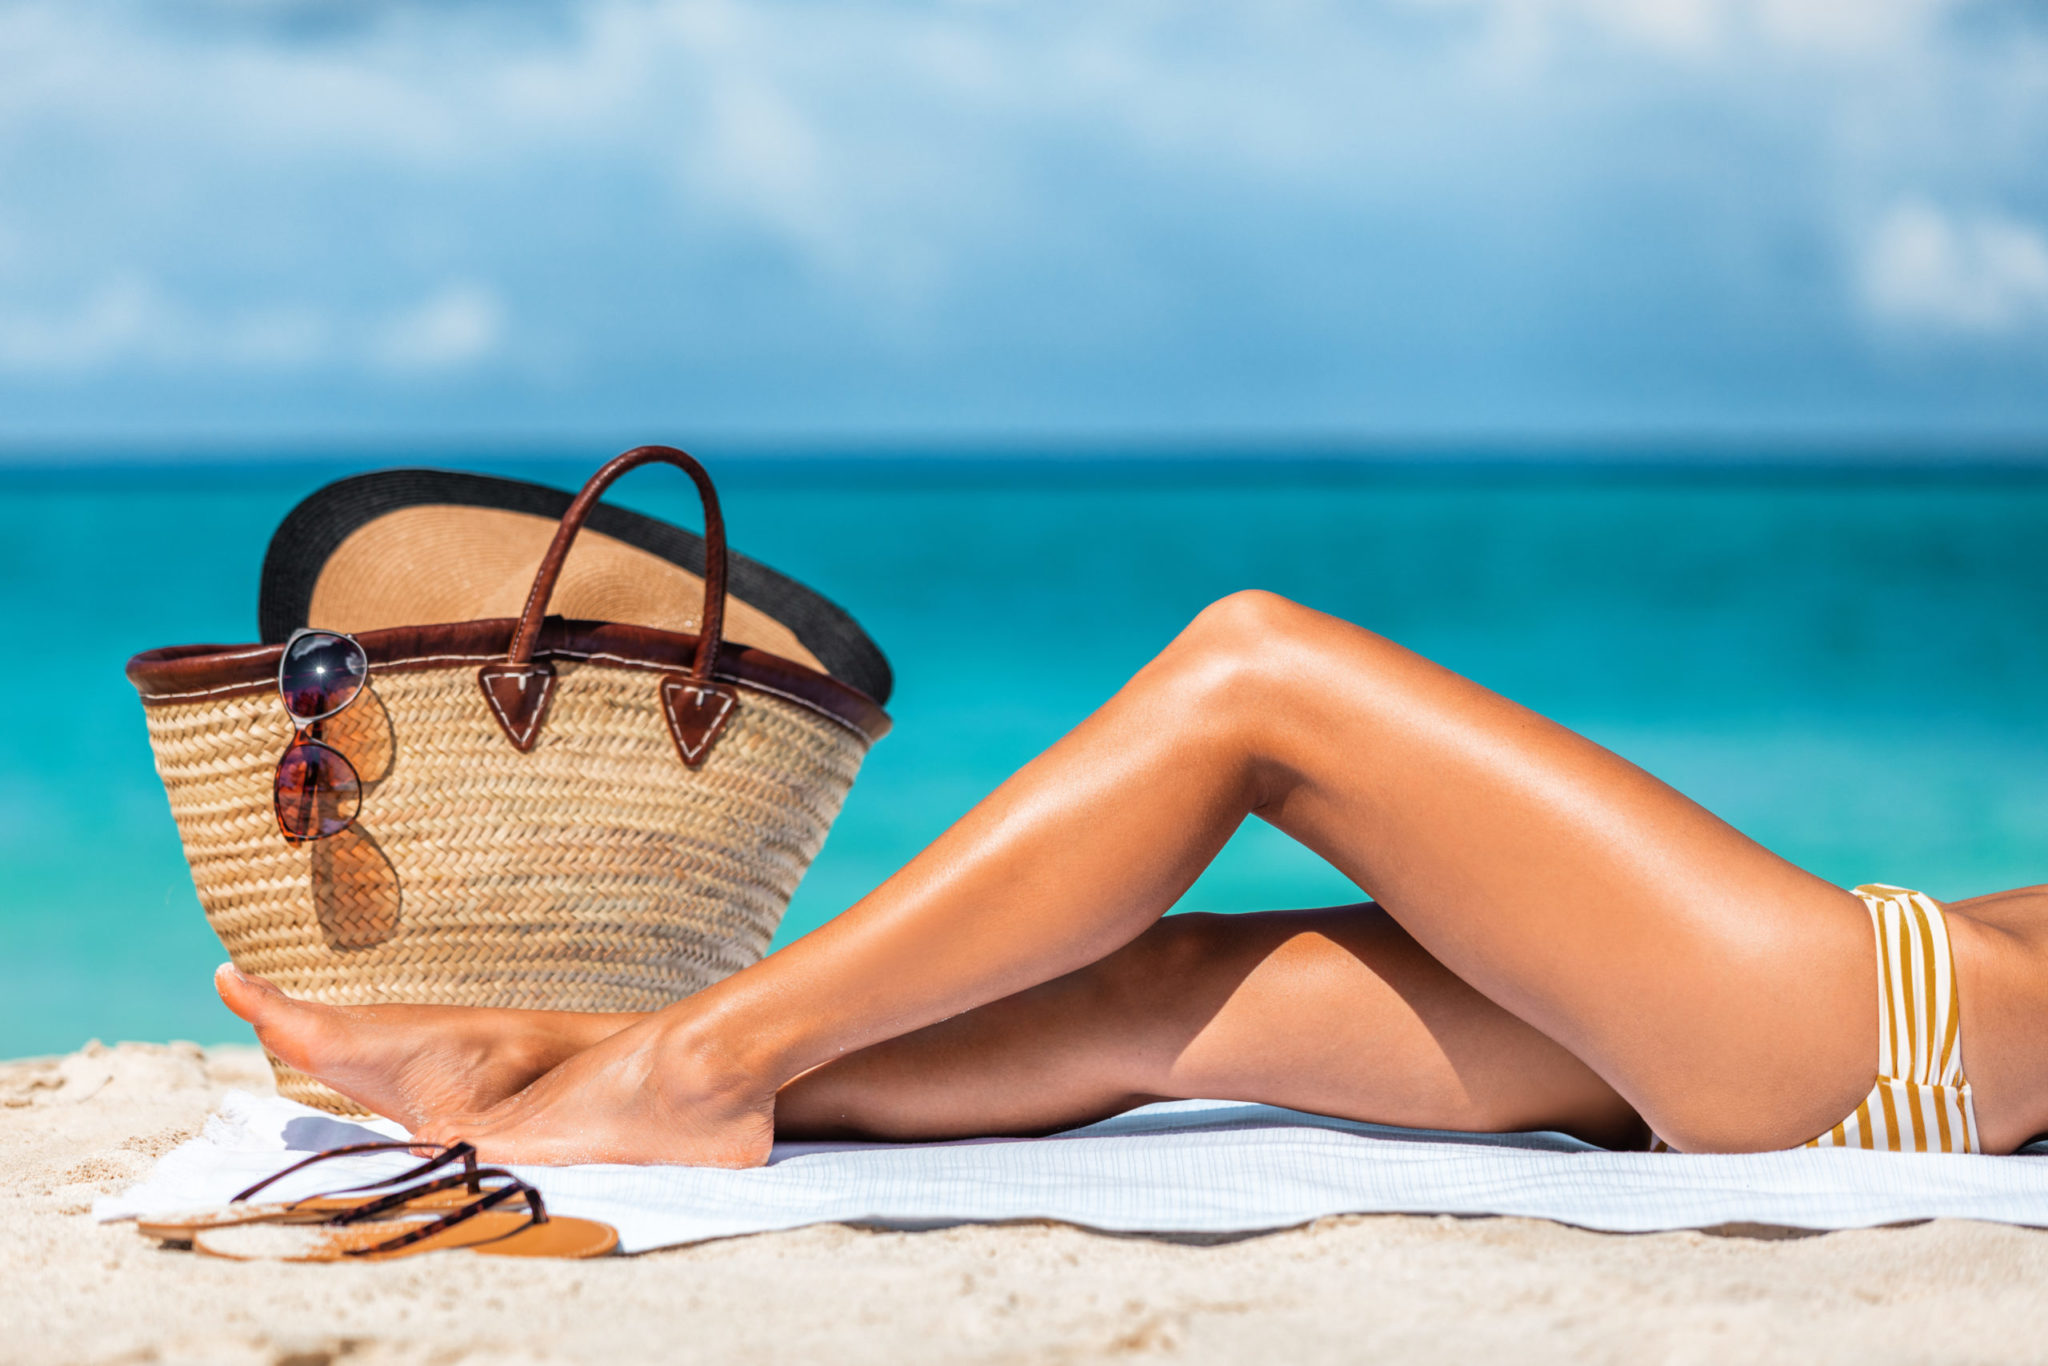 Laser hair removal and sunbathing